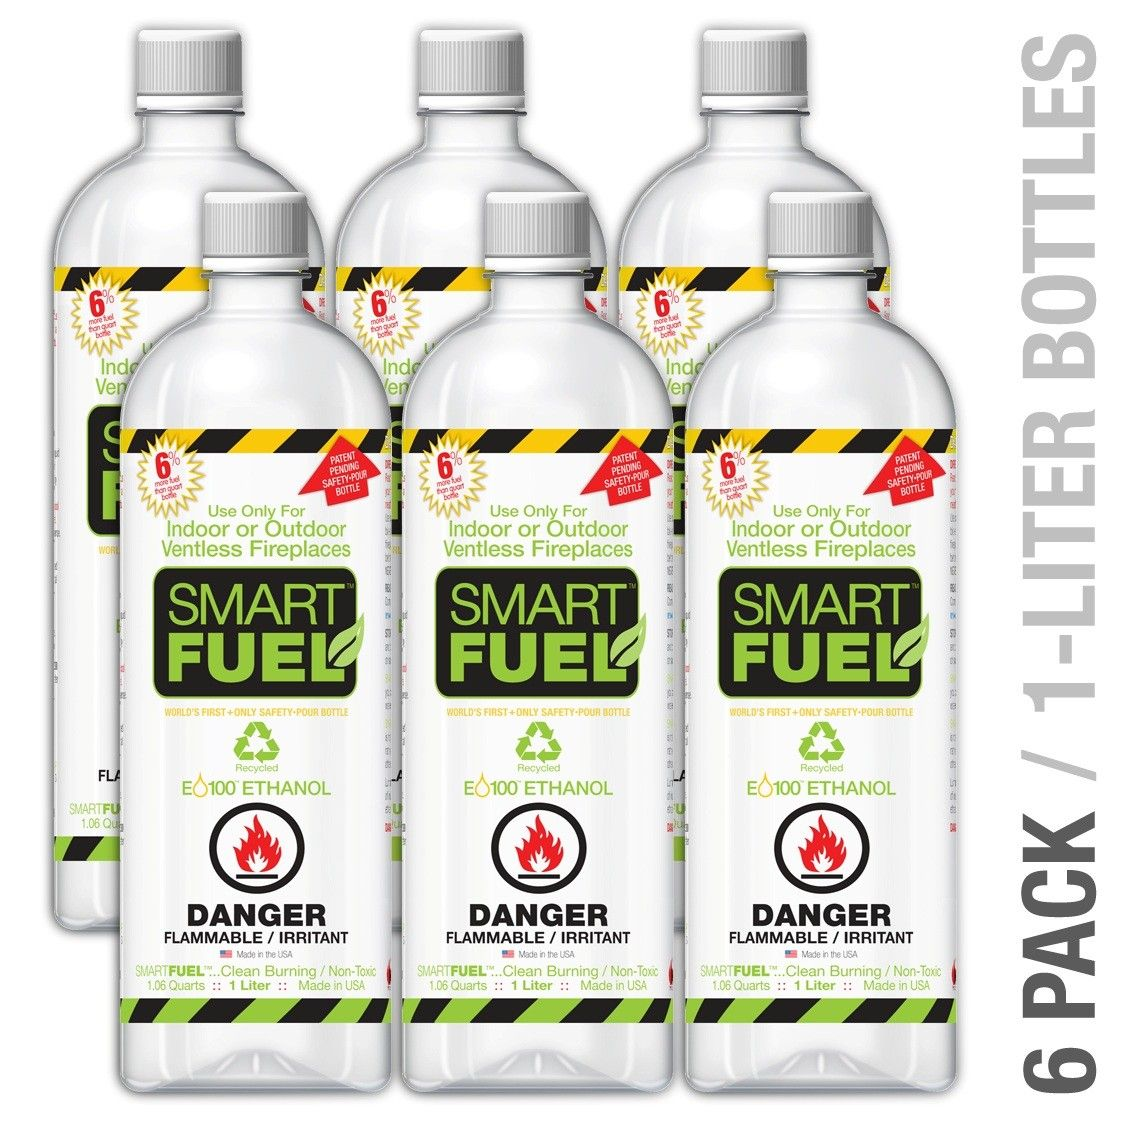 Smart Fuel Liquid Bio Ethanol Fuel Bottle Ventless Fireplace